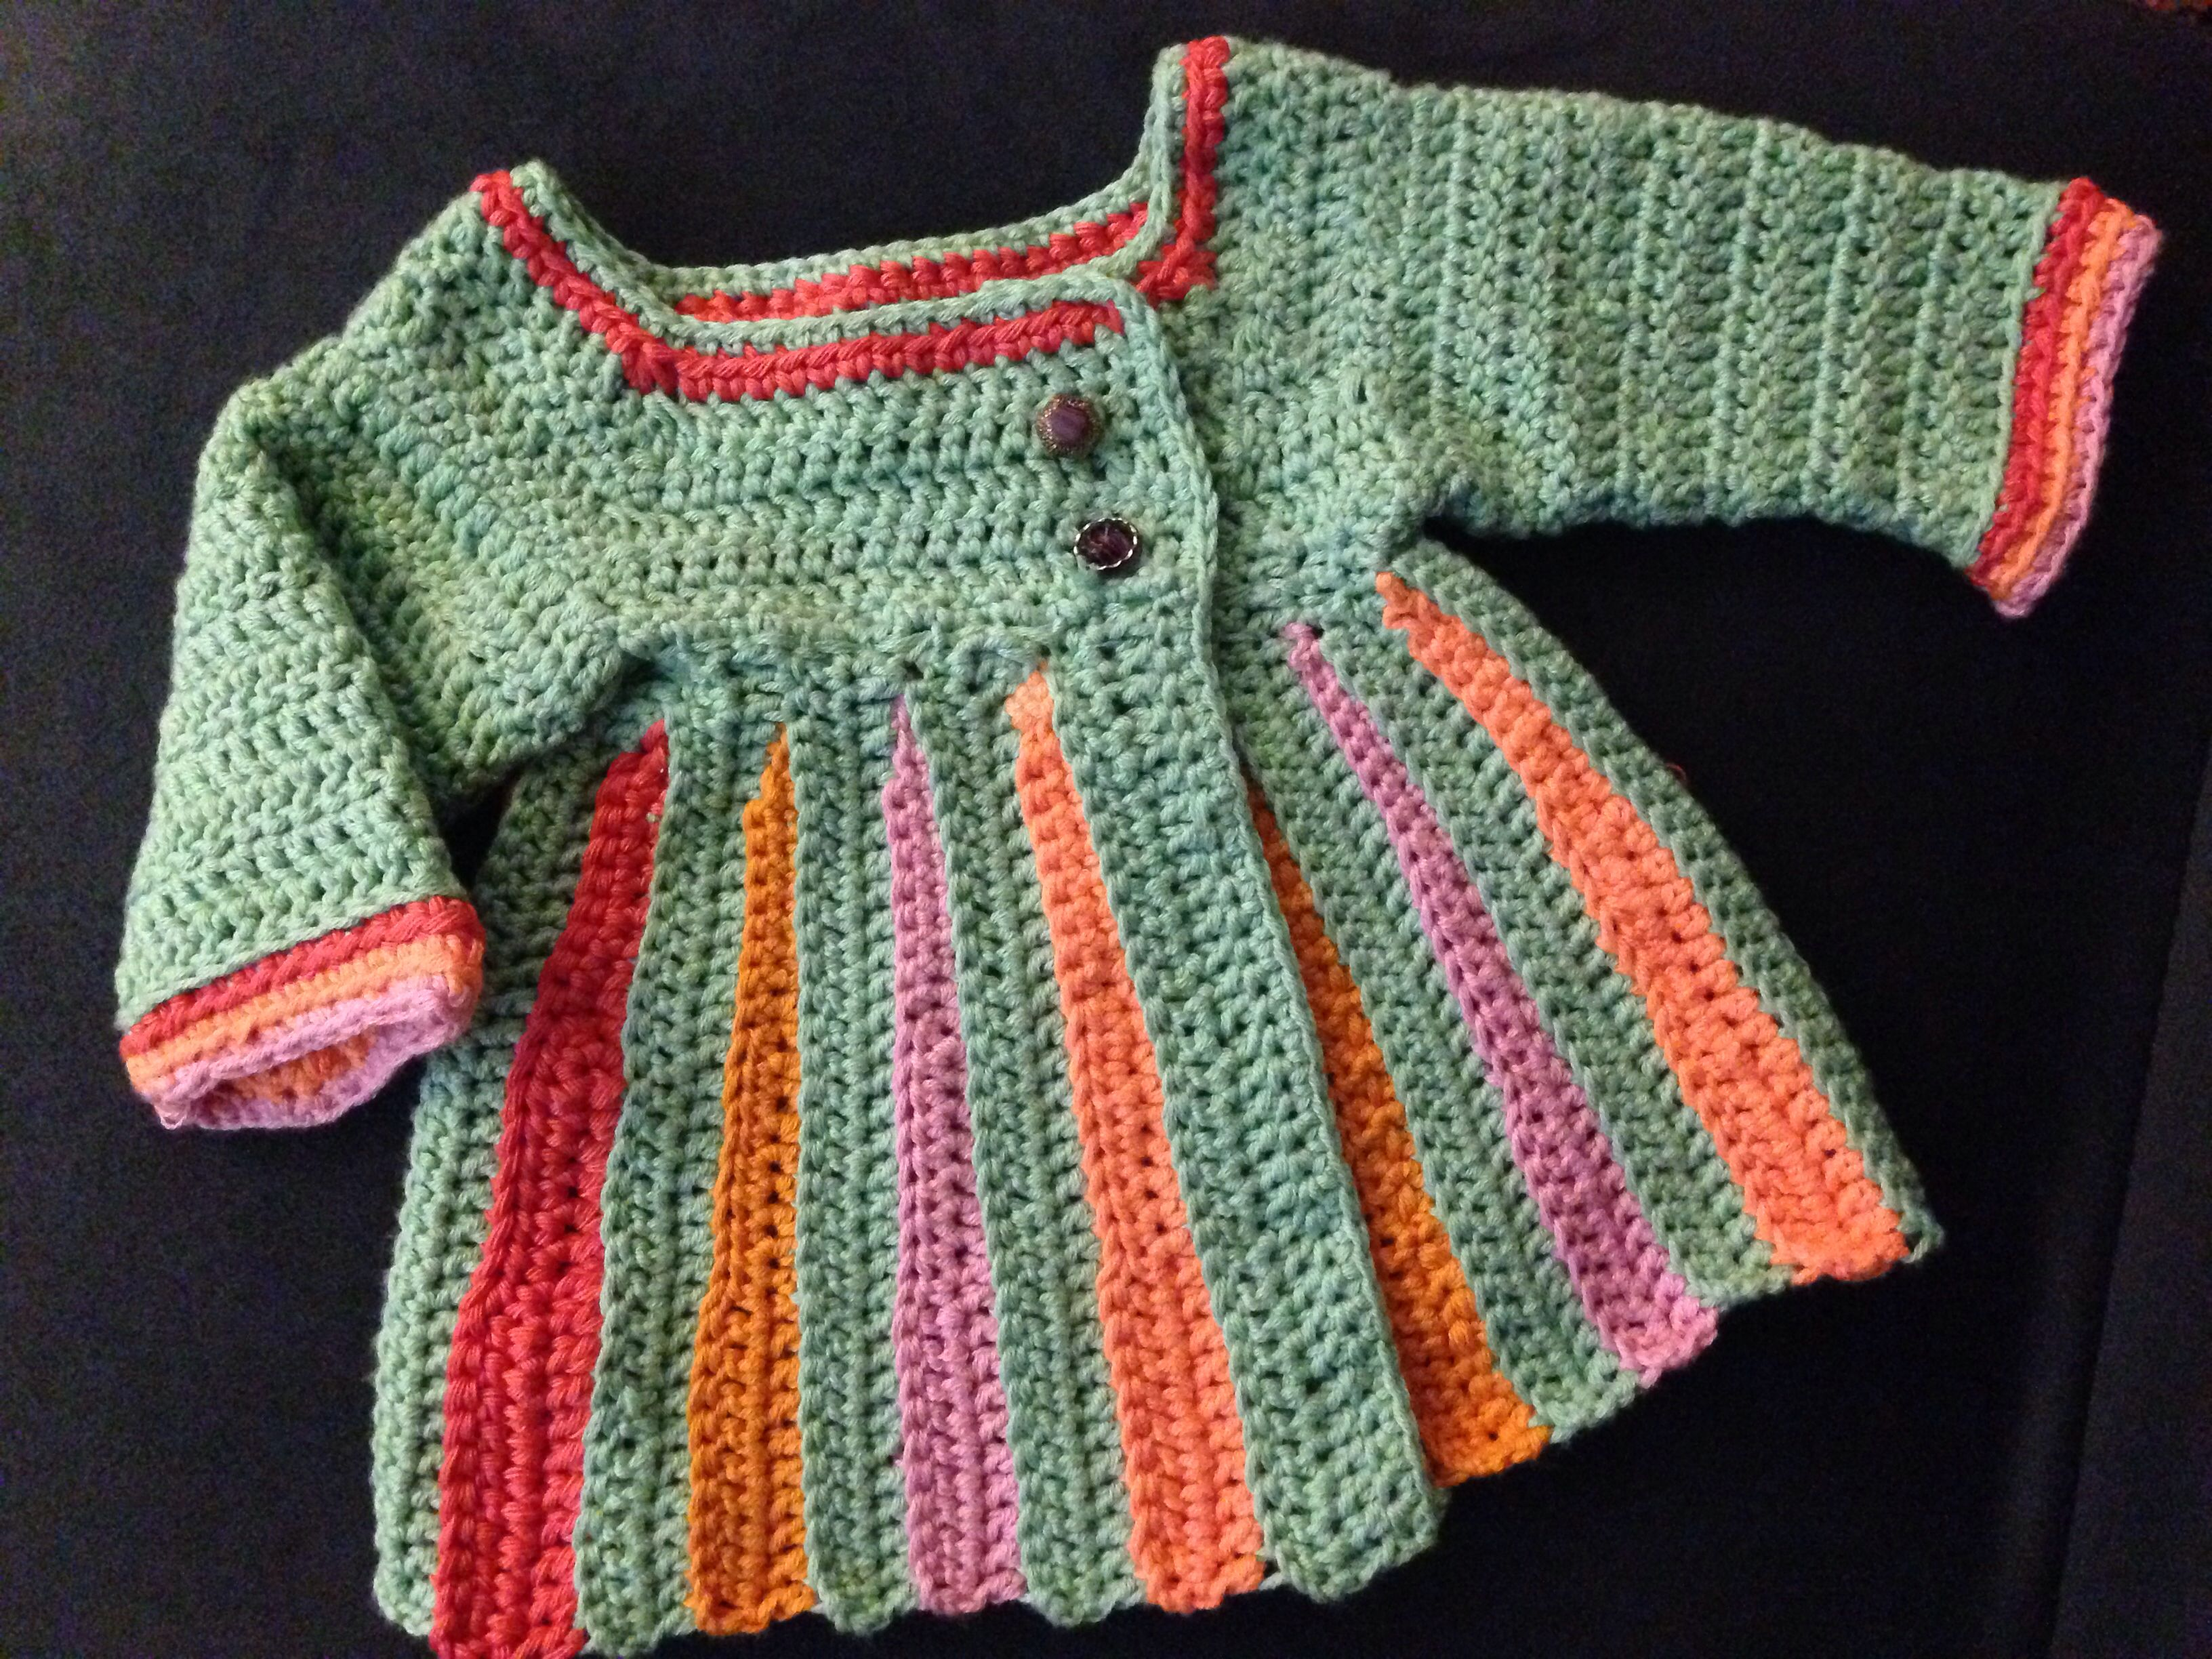 Crochet baby sweater / free pattern at http://www.mooglyblog.com ...